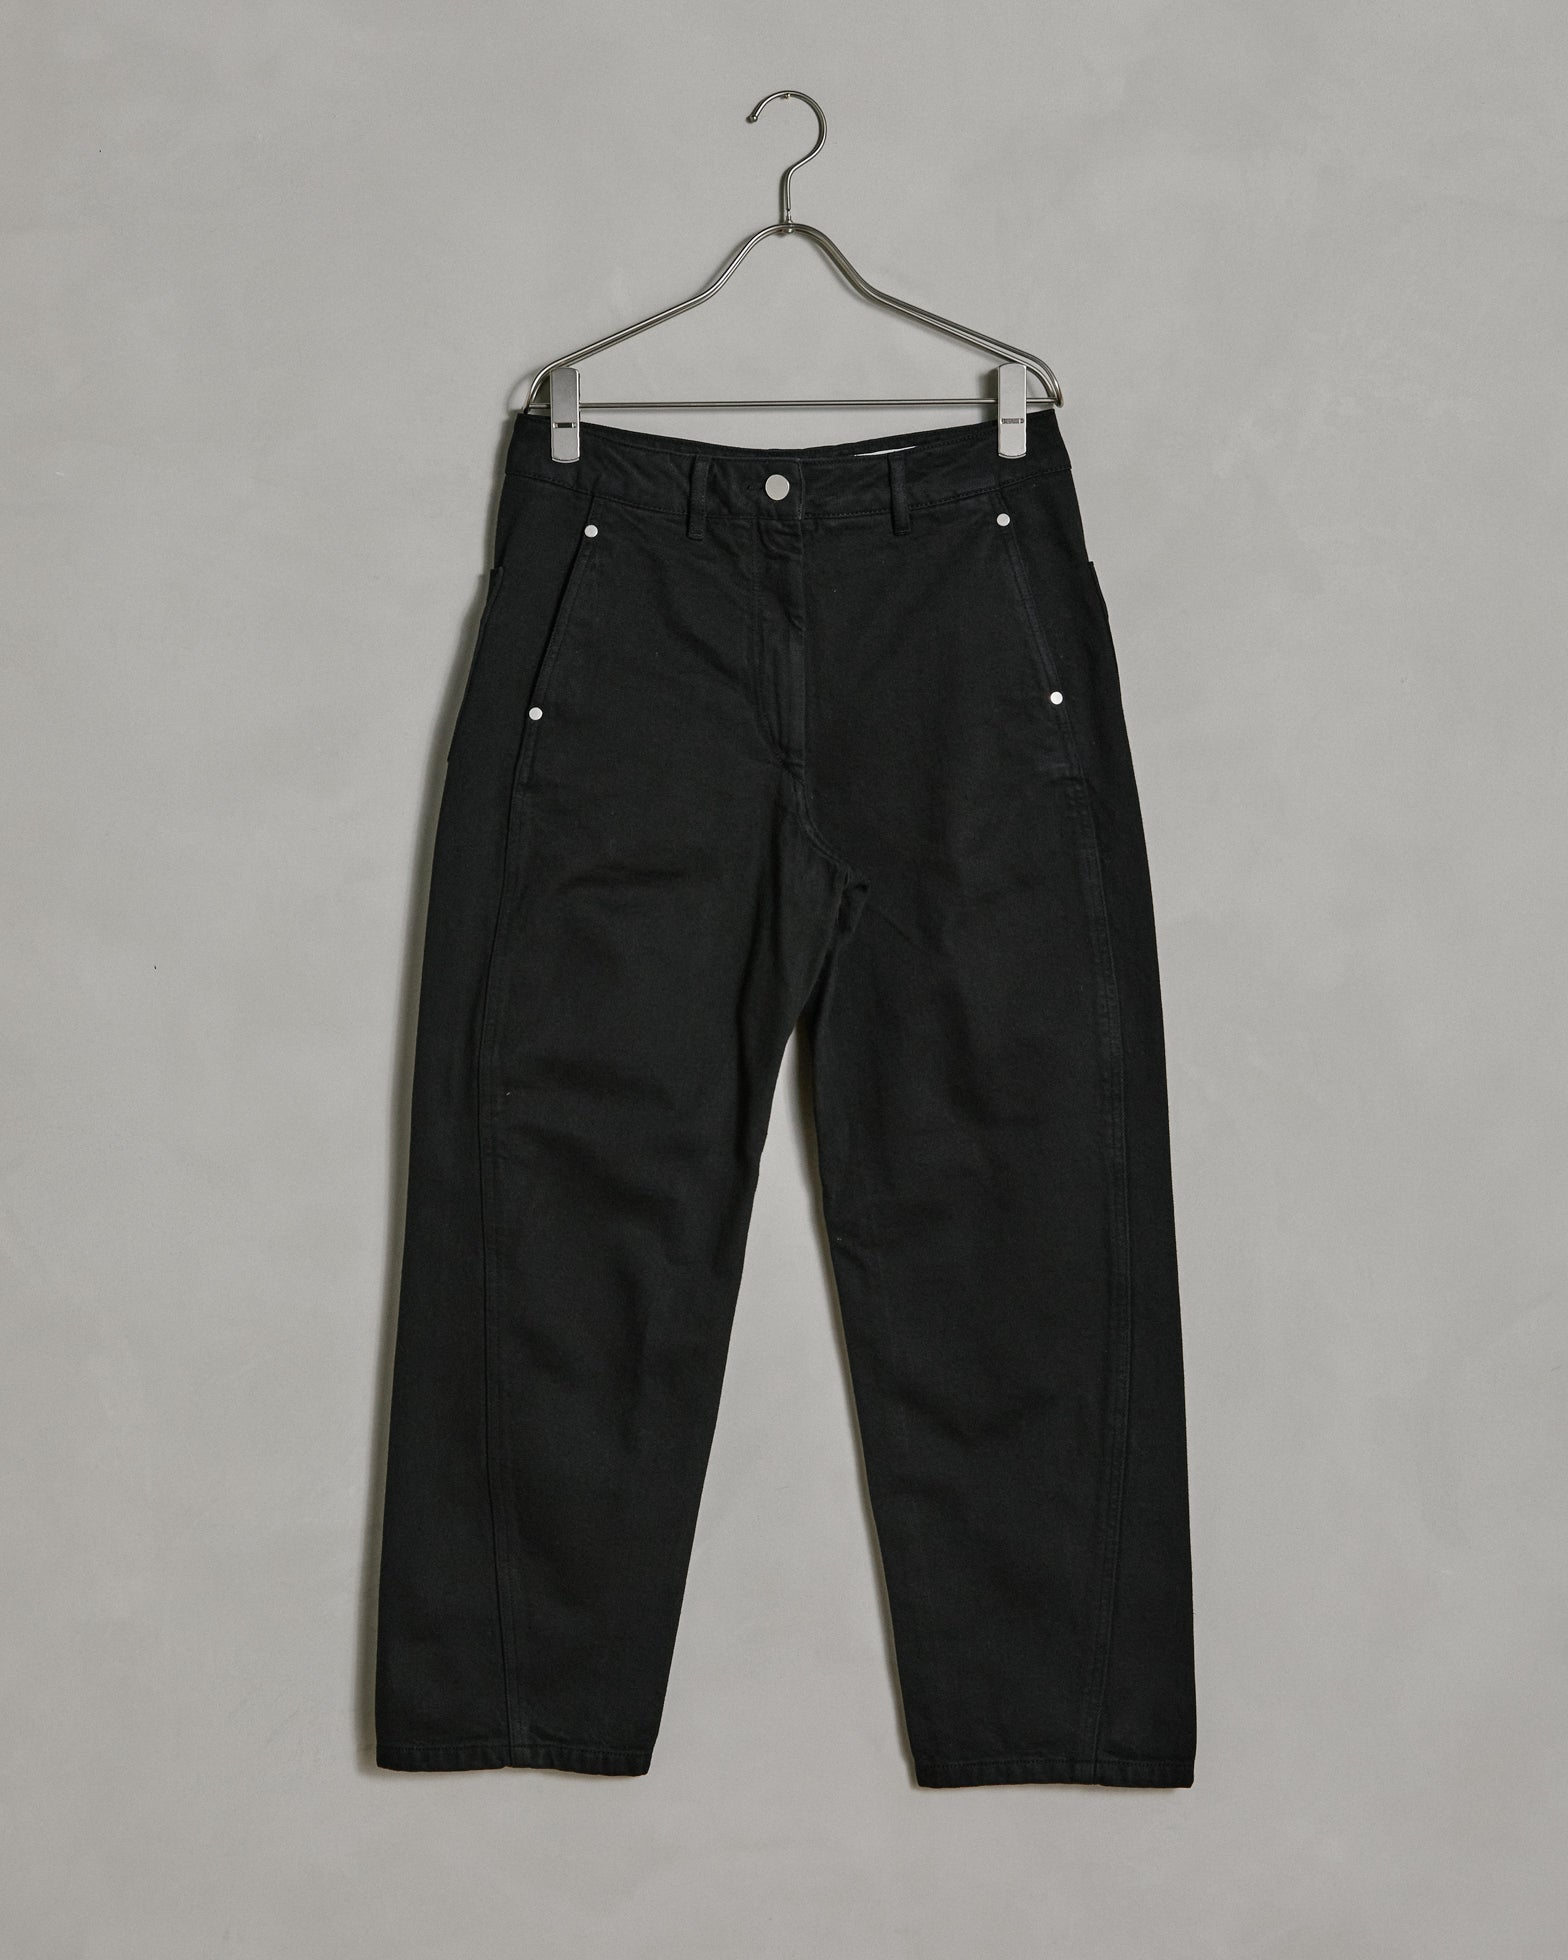 Twisted Pants in Black